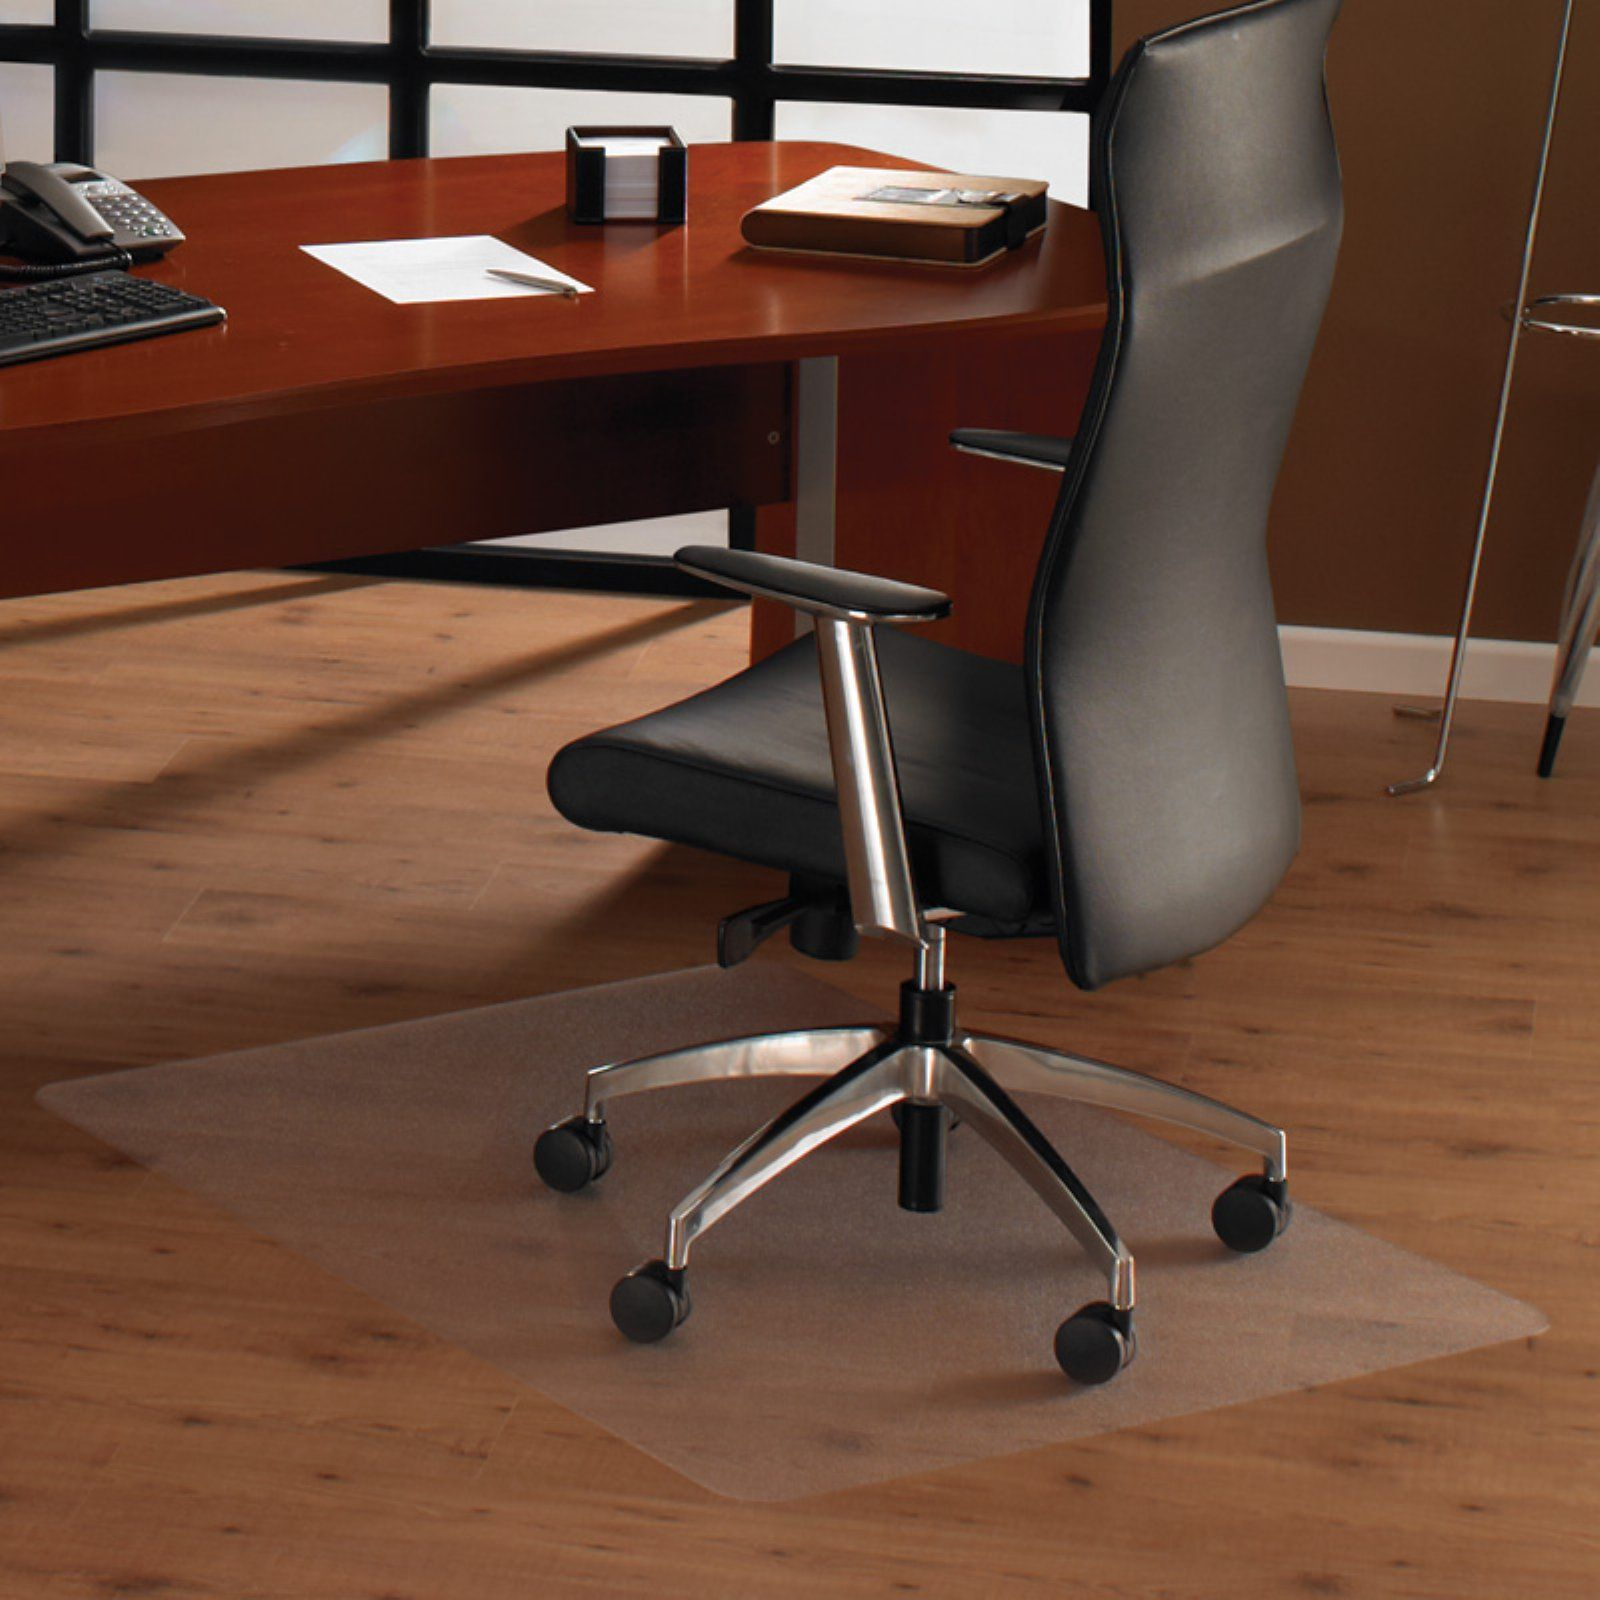 Pleasing Floortex Cleartex Polycarbonate Ultimat Chair Mat In 2019 Ncnpc Chair Design For Home Ncnpcorg